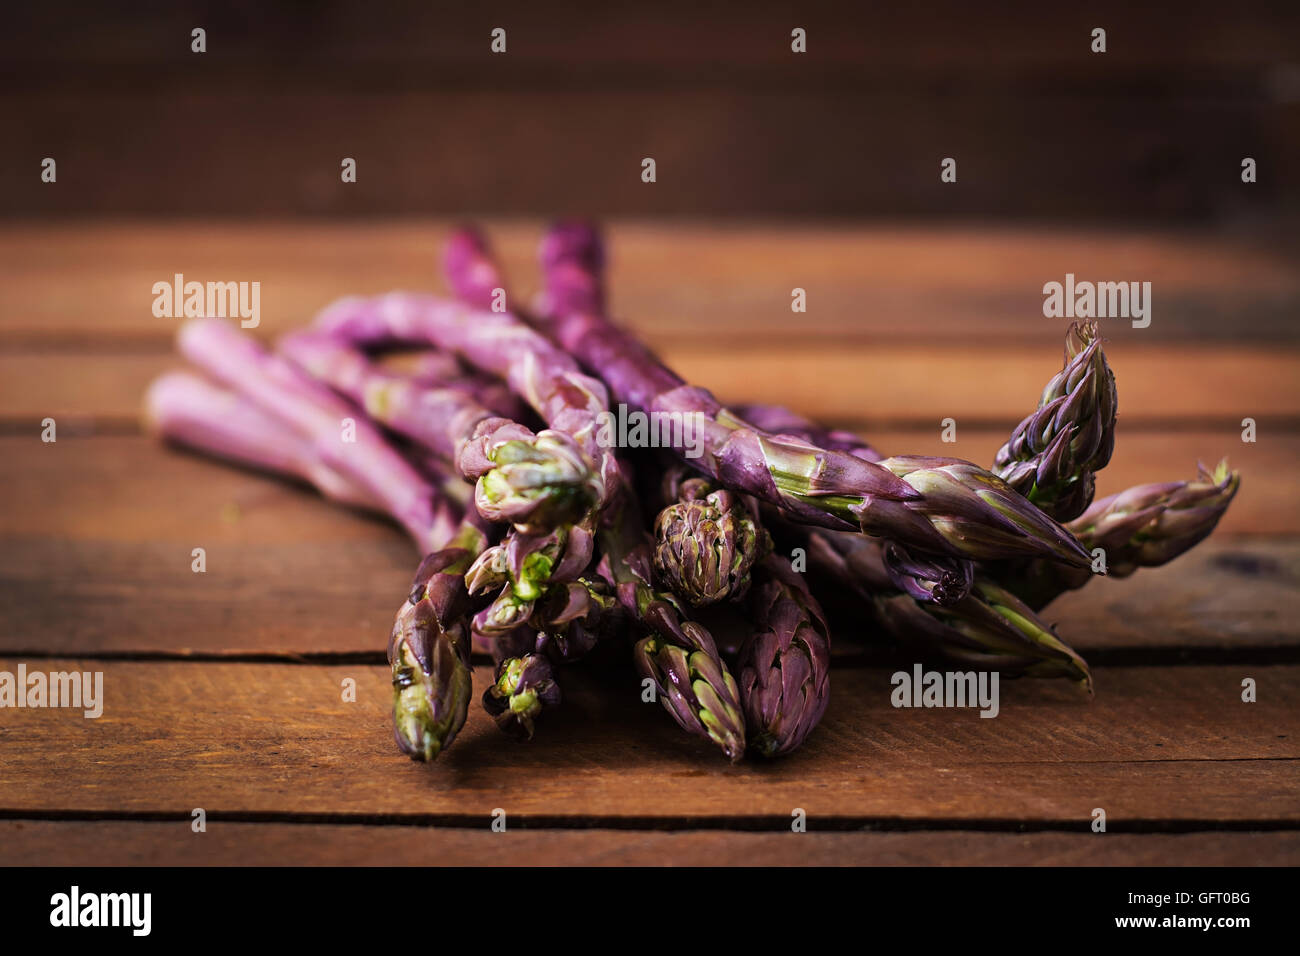 Bunch of fresh asparagus on a wooden background - Stock Image